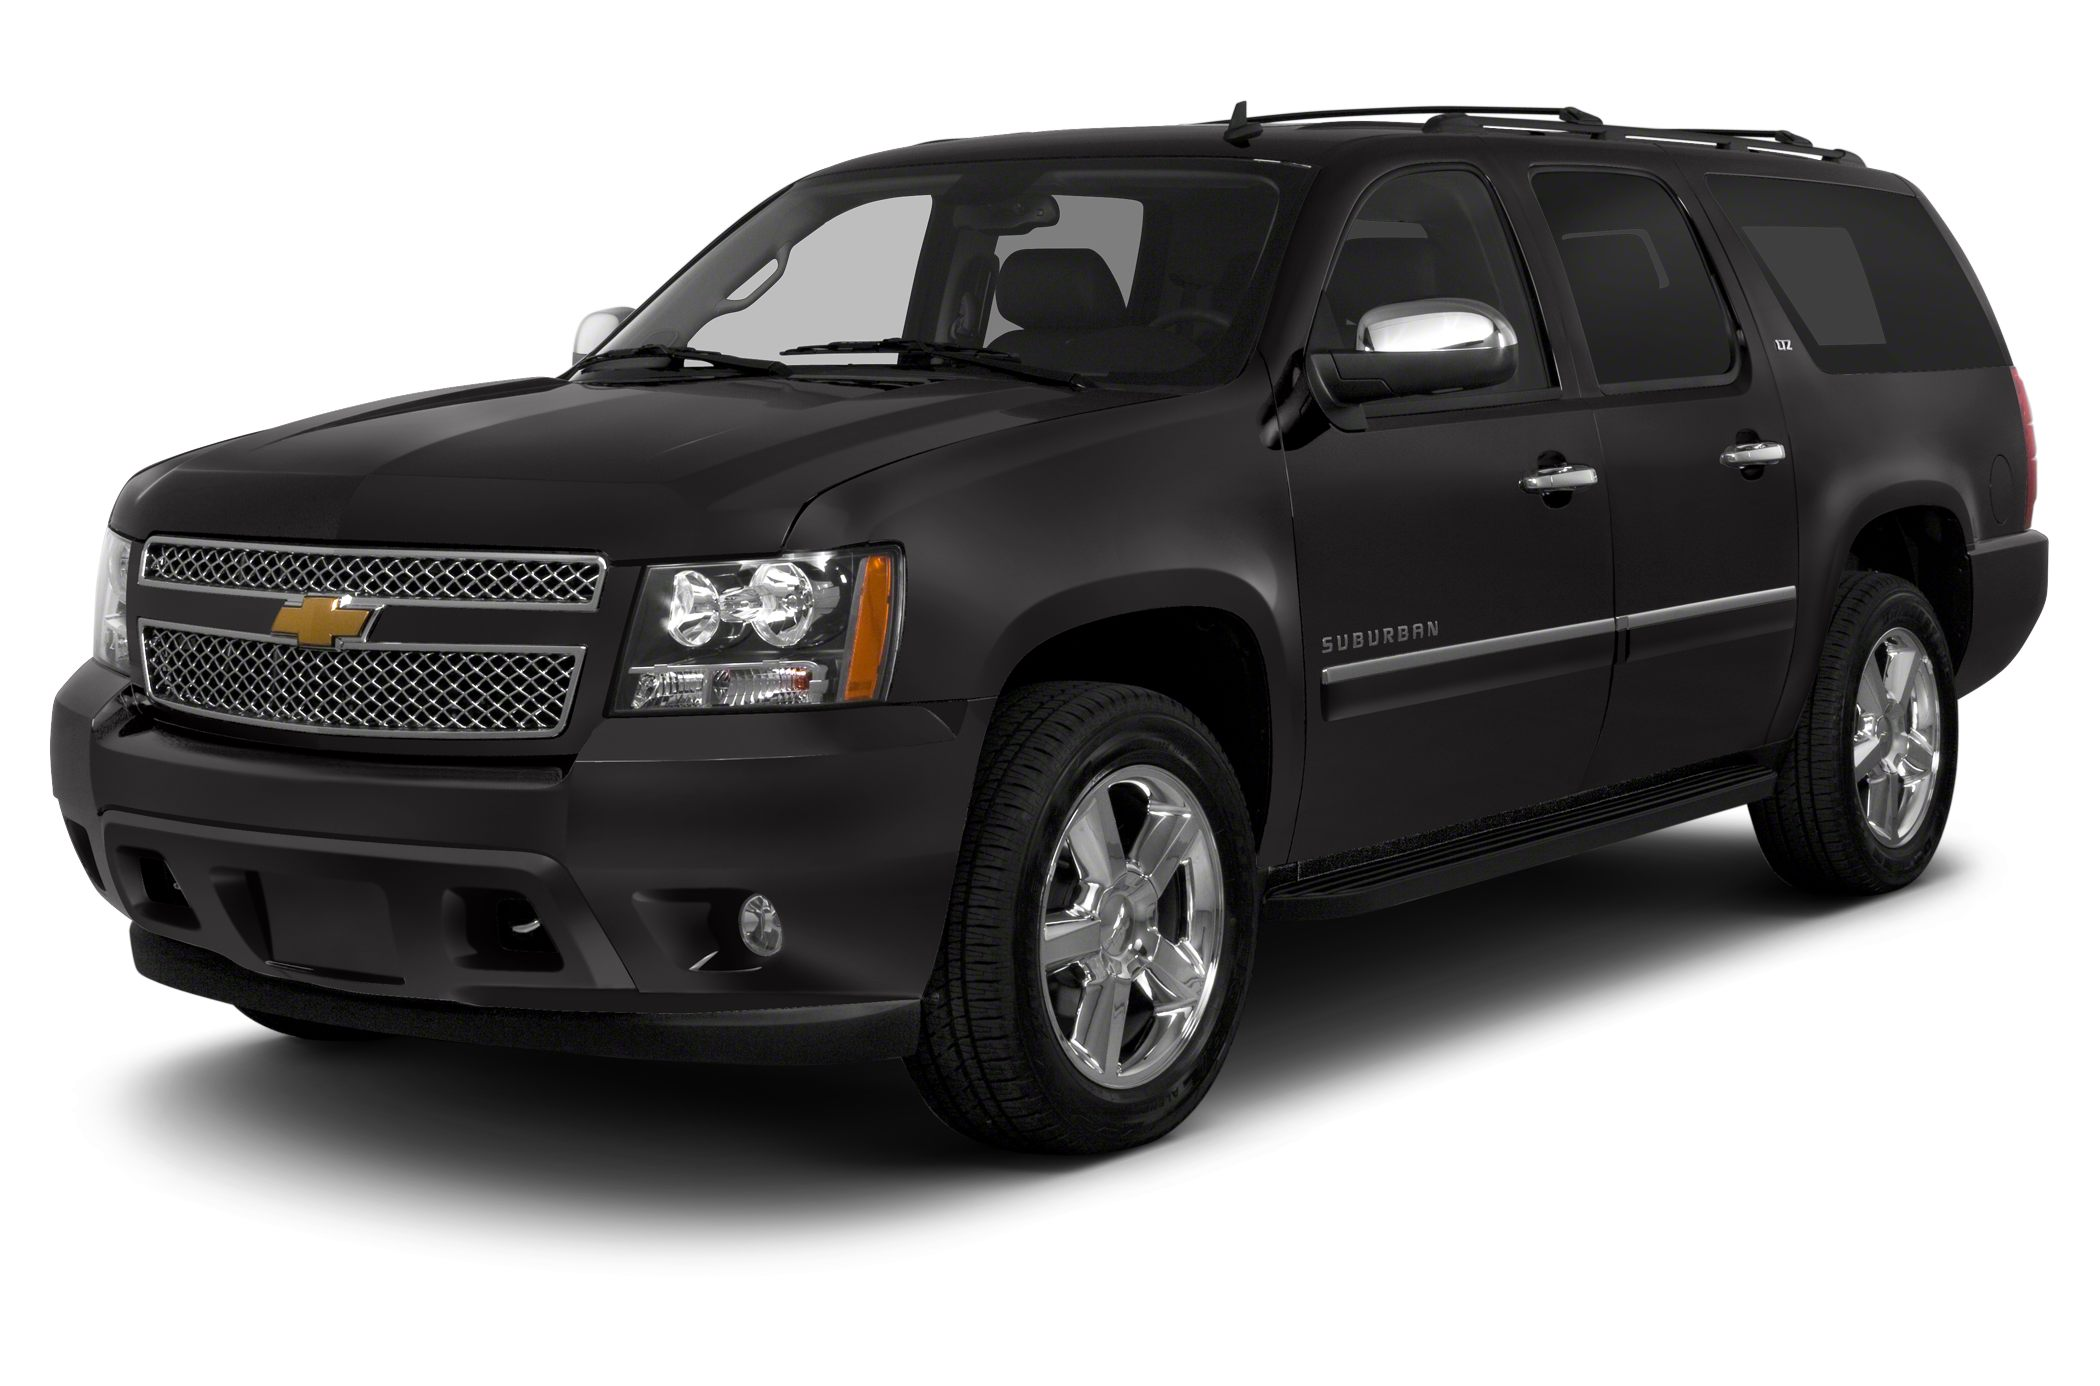 2013 Chevrolet Suburban 1500 LTZ SUV for sale in Manassas for $30,777 with 65,202 miles.